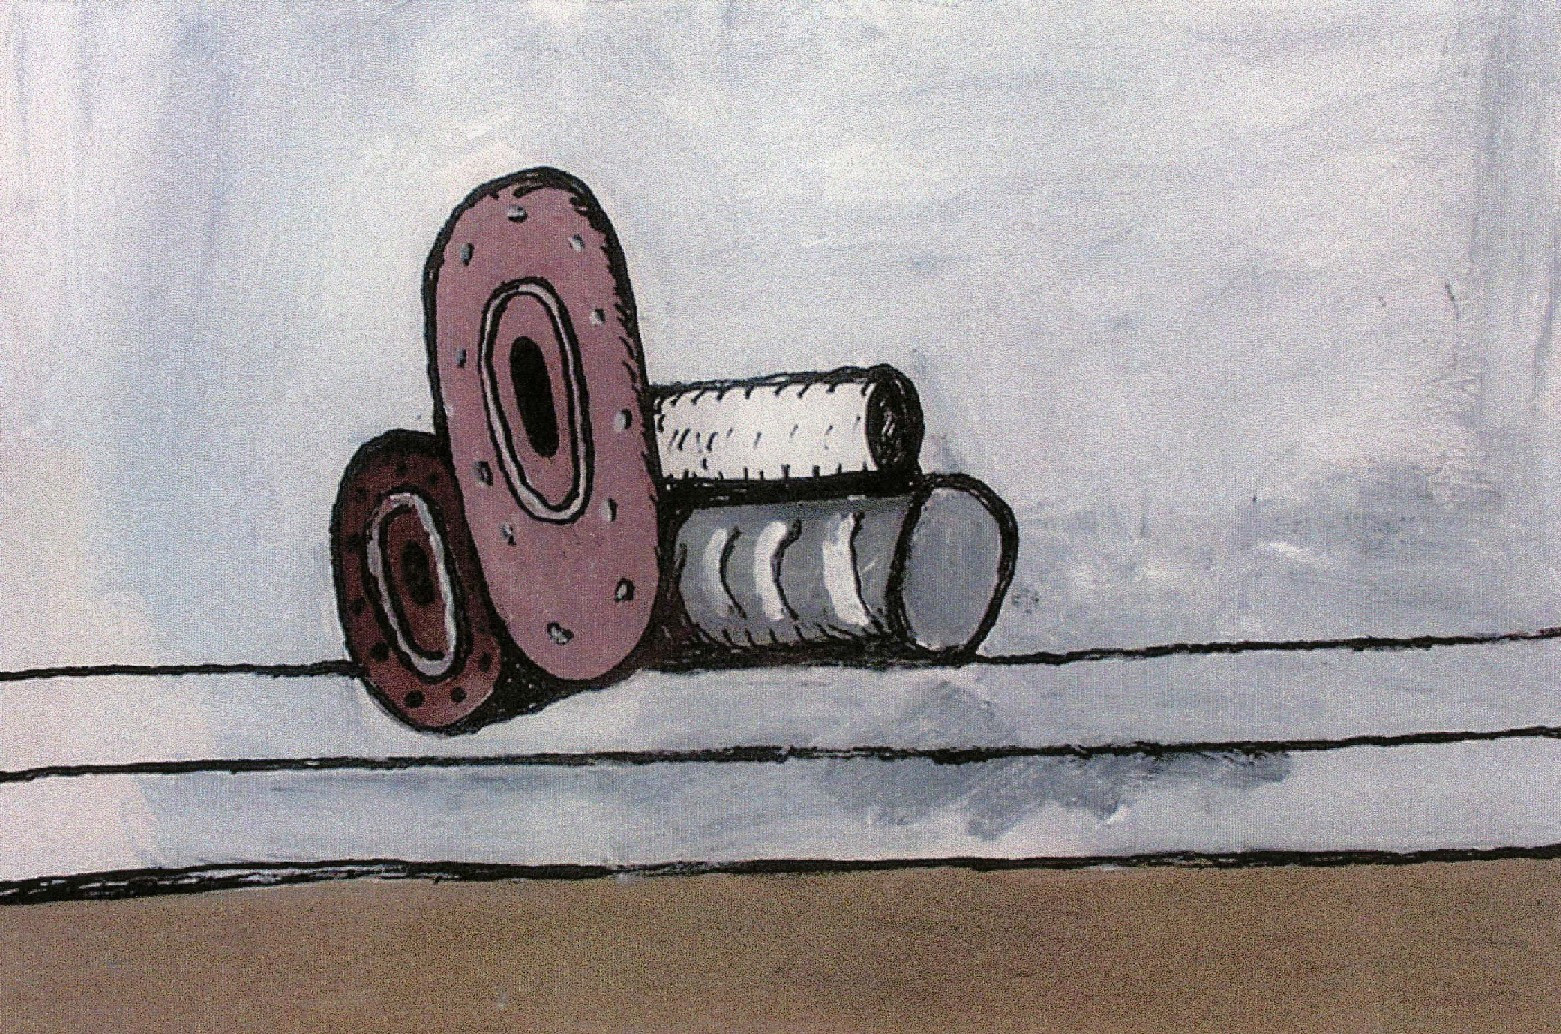 Philip Guston. Untitled. 1980